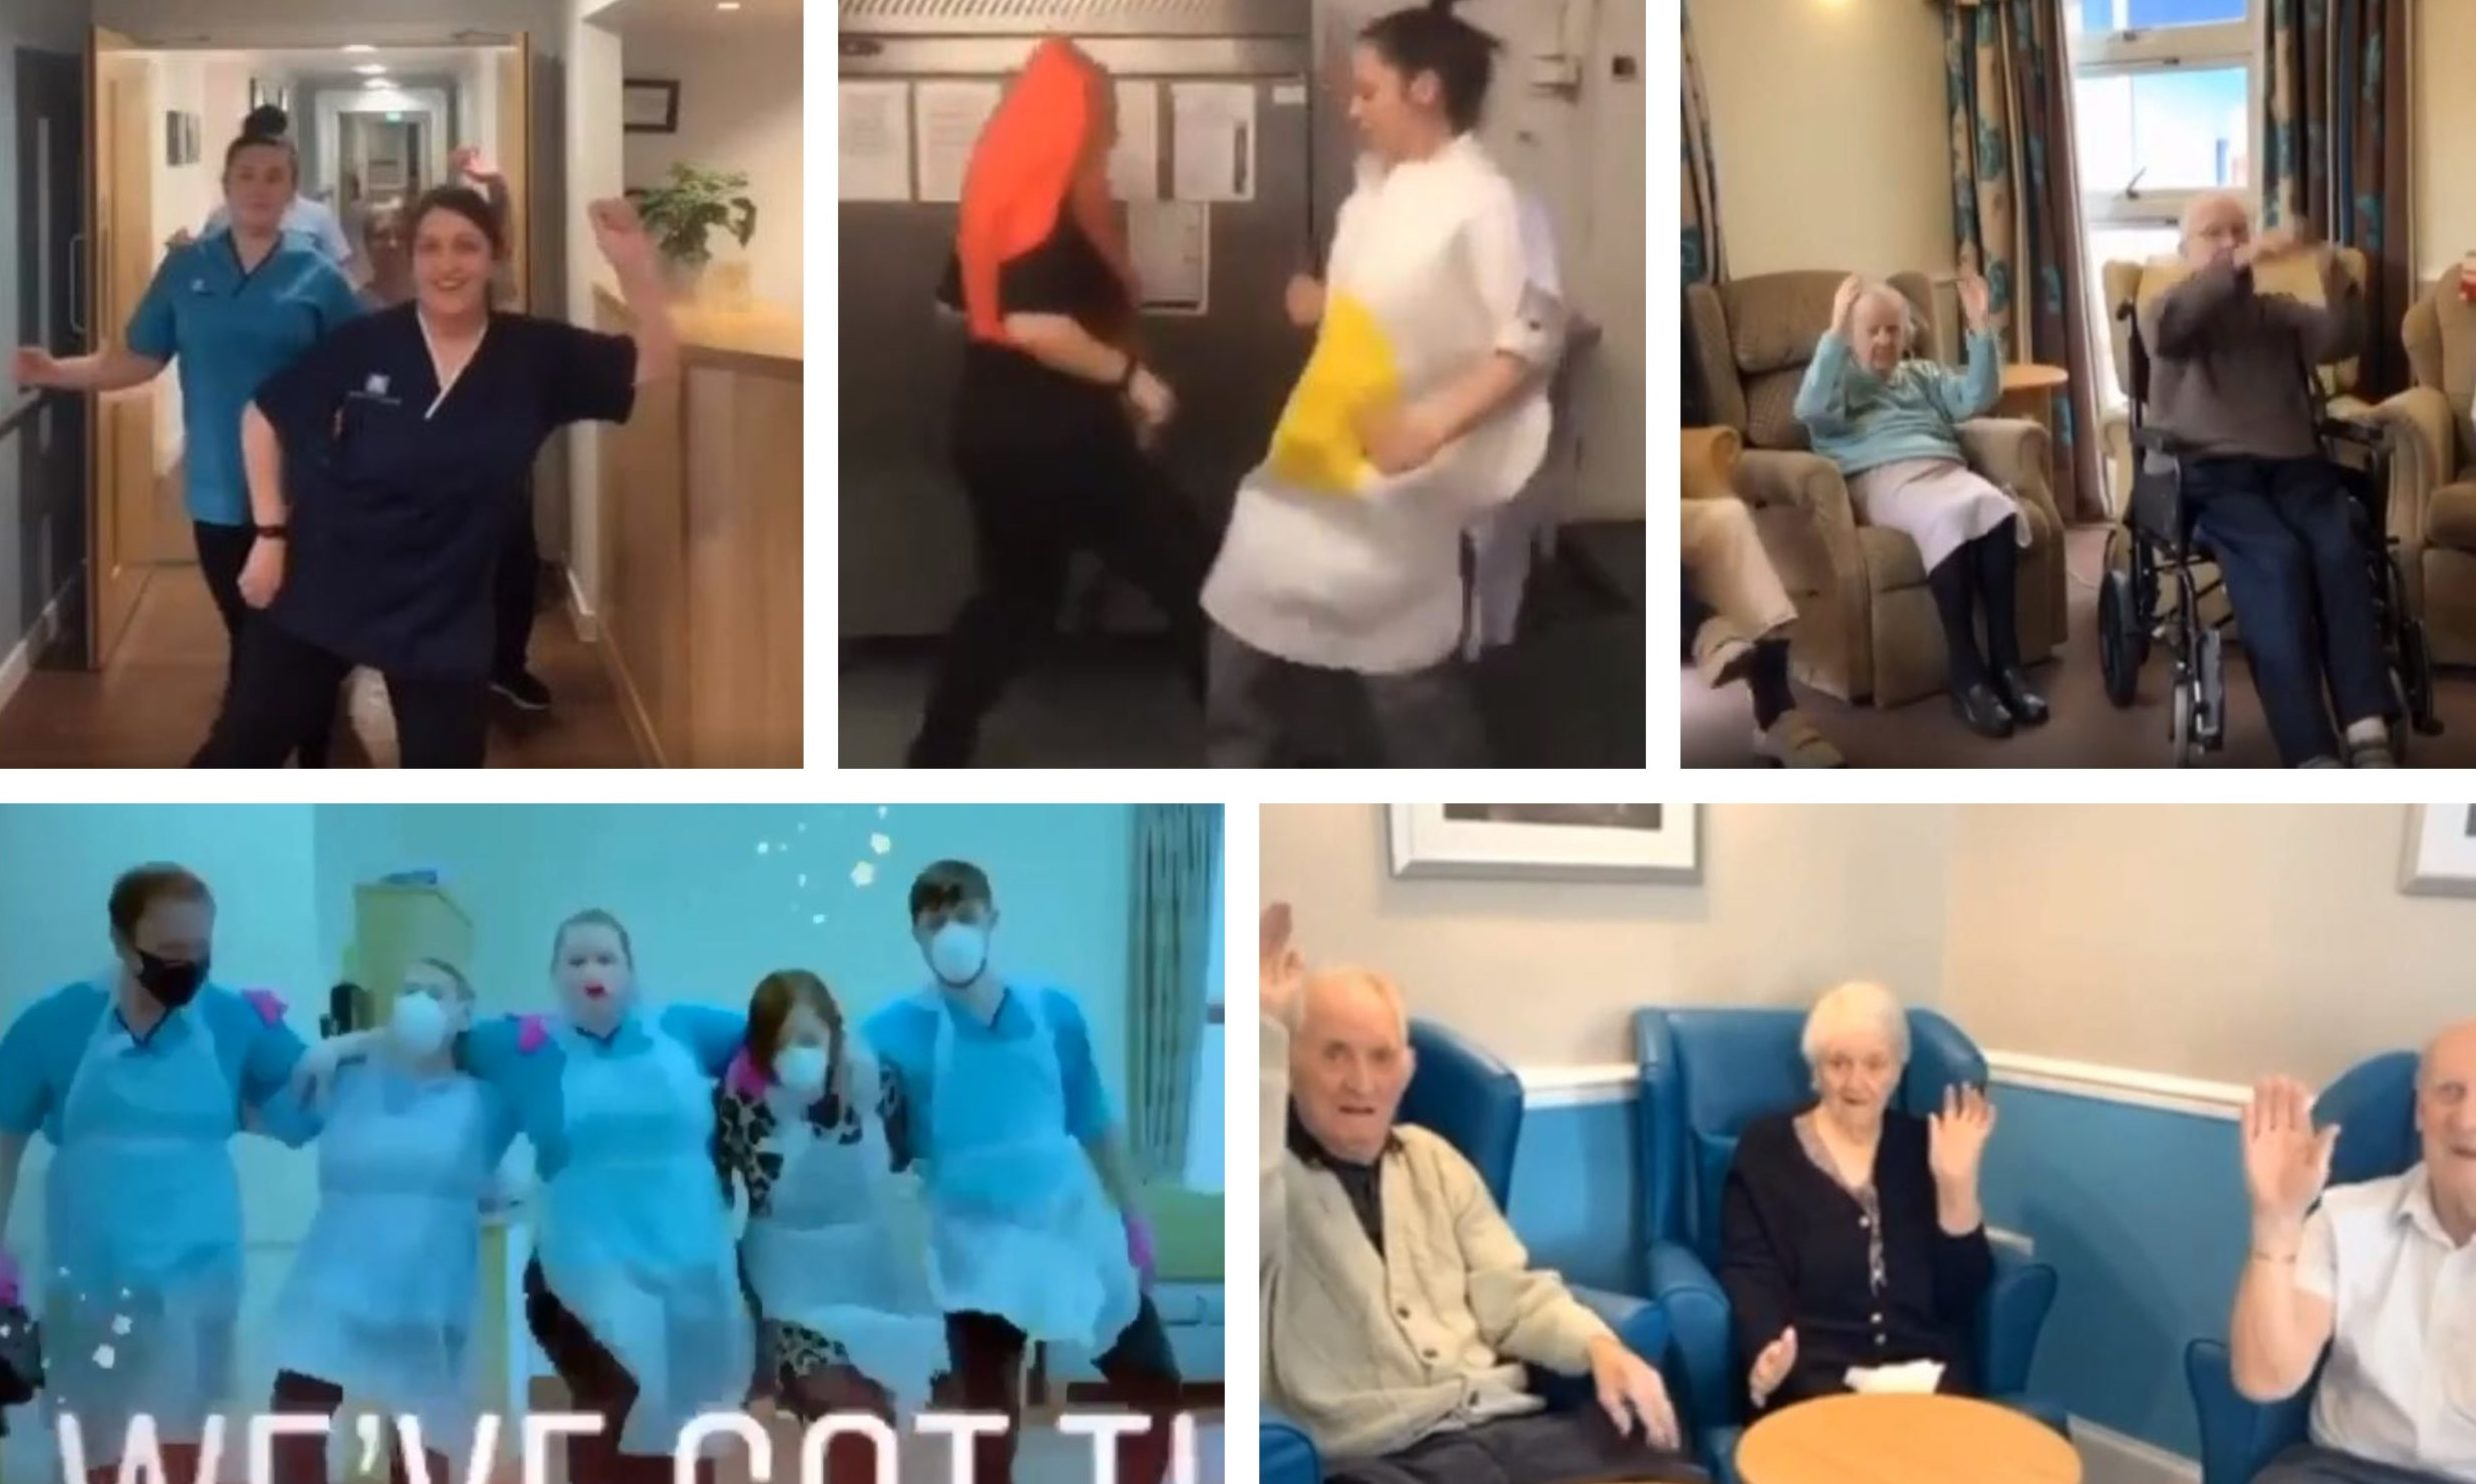 Balhousie staff and residents taking part in the TikTok Dance Challenge.